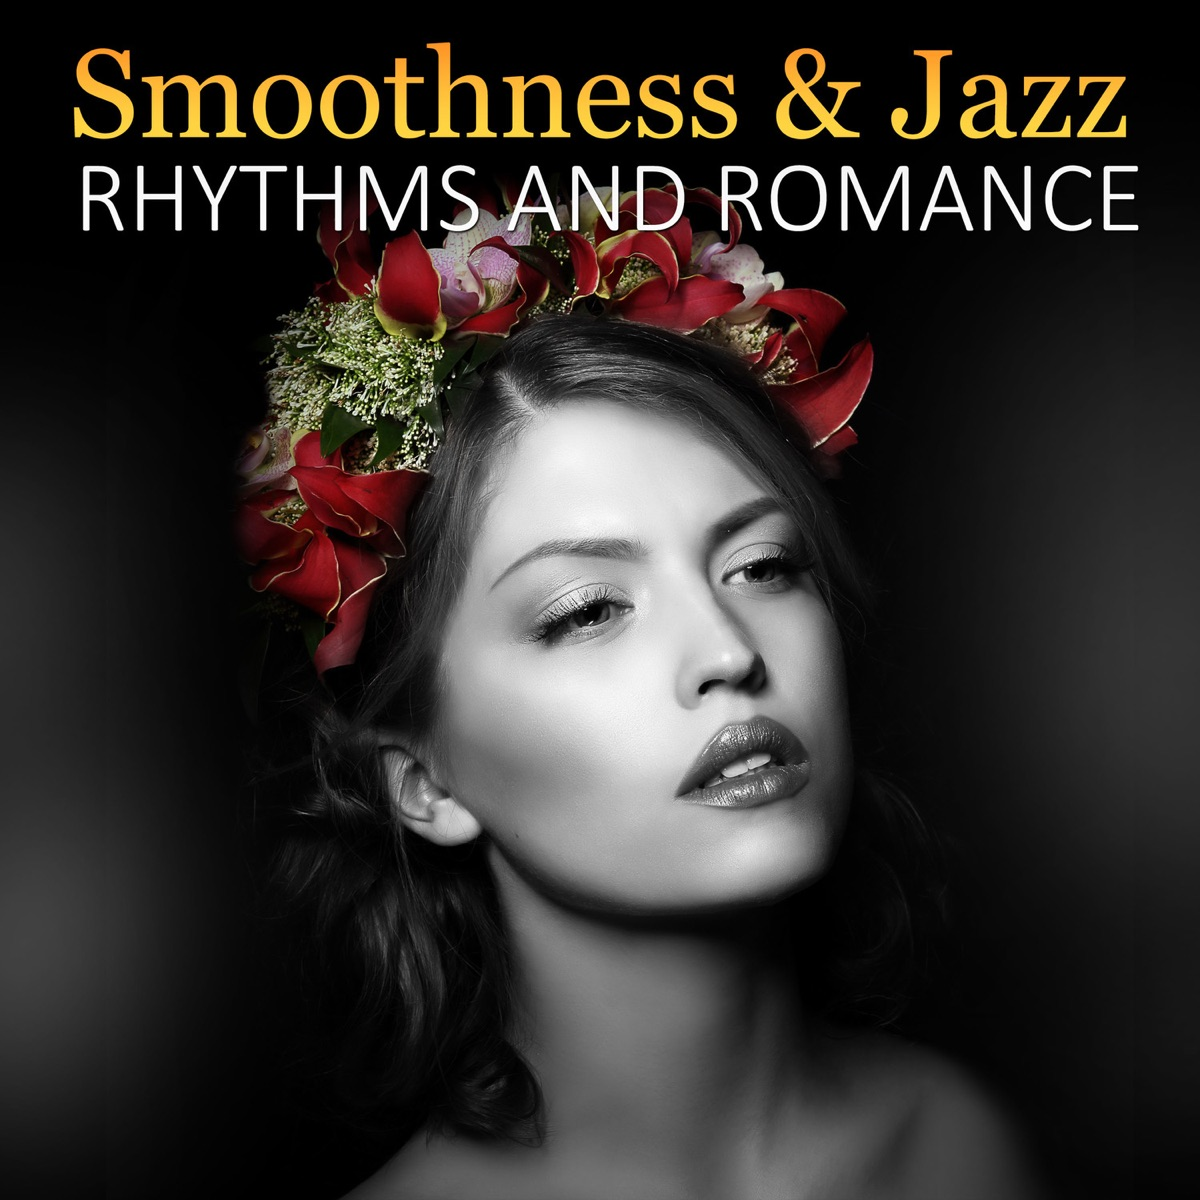 Smoothness & Jazz Rhythms and Romance: Easy Listening Piano